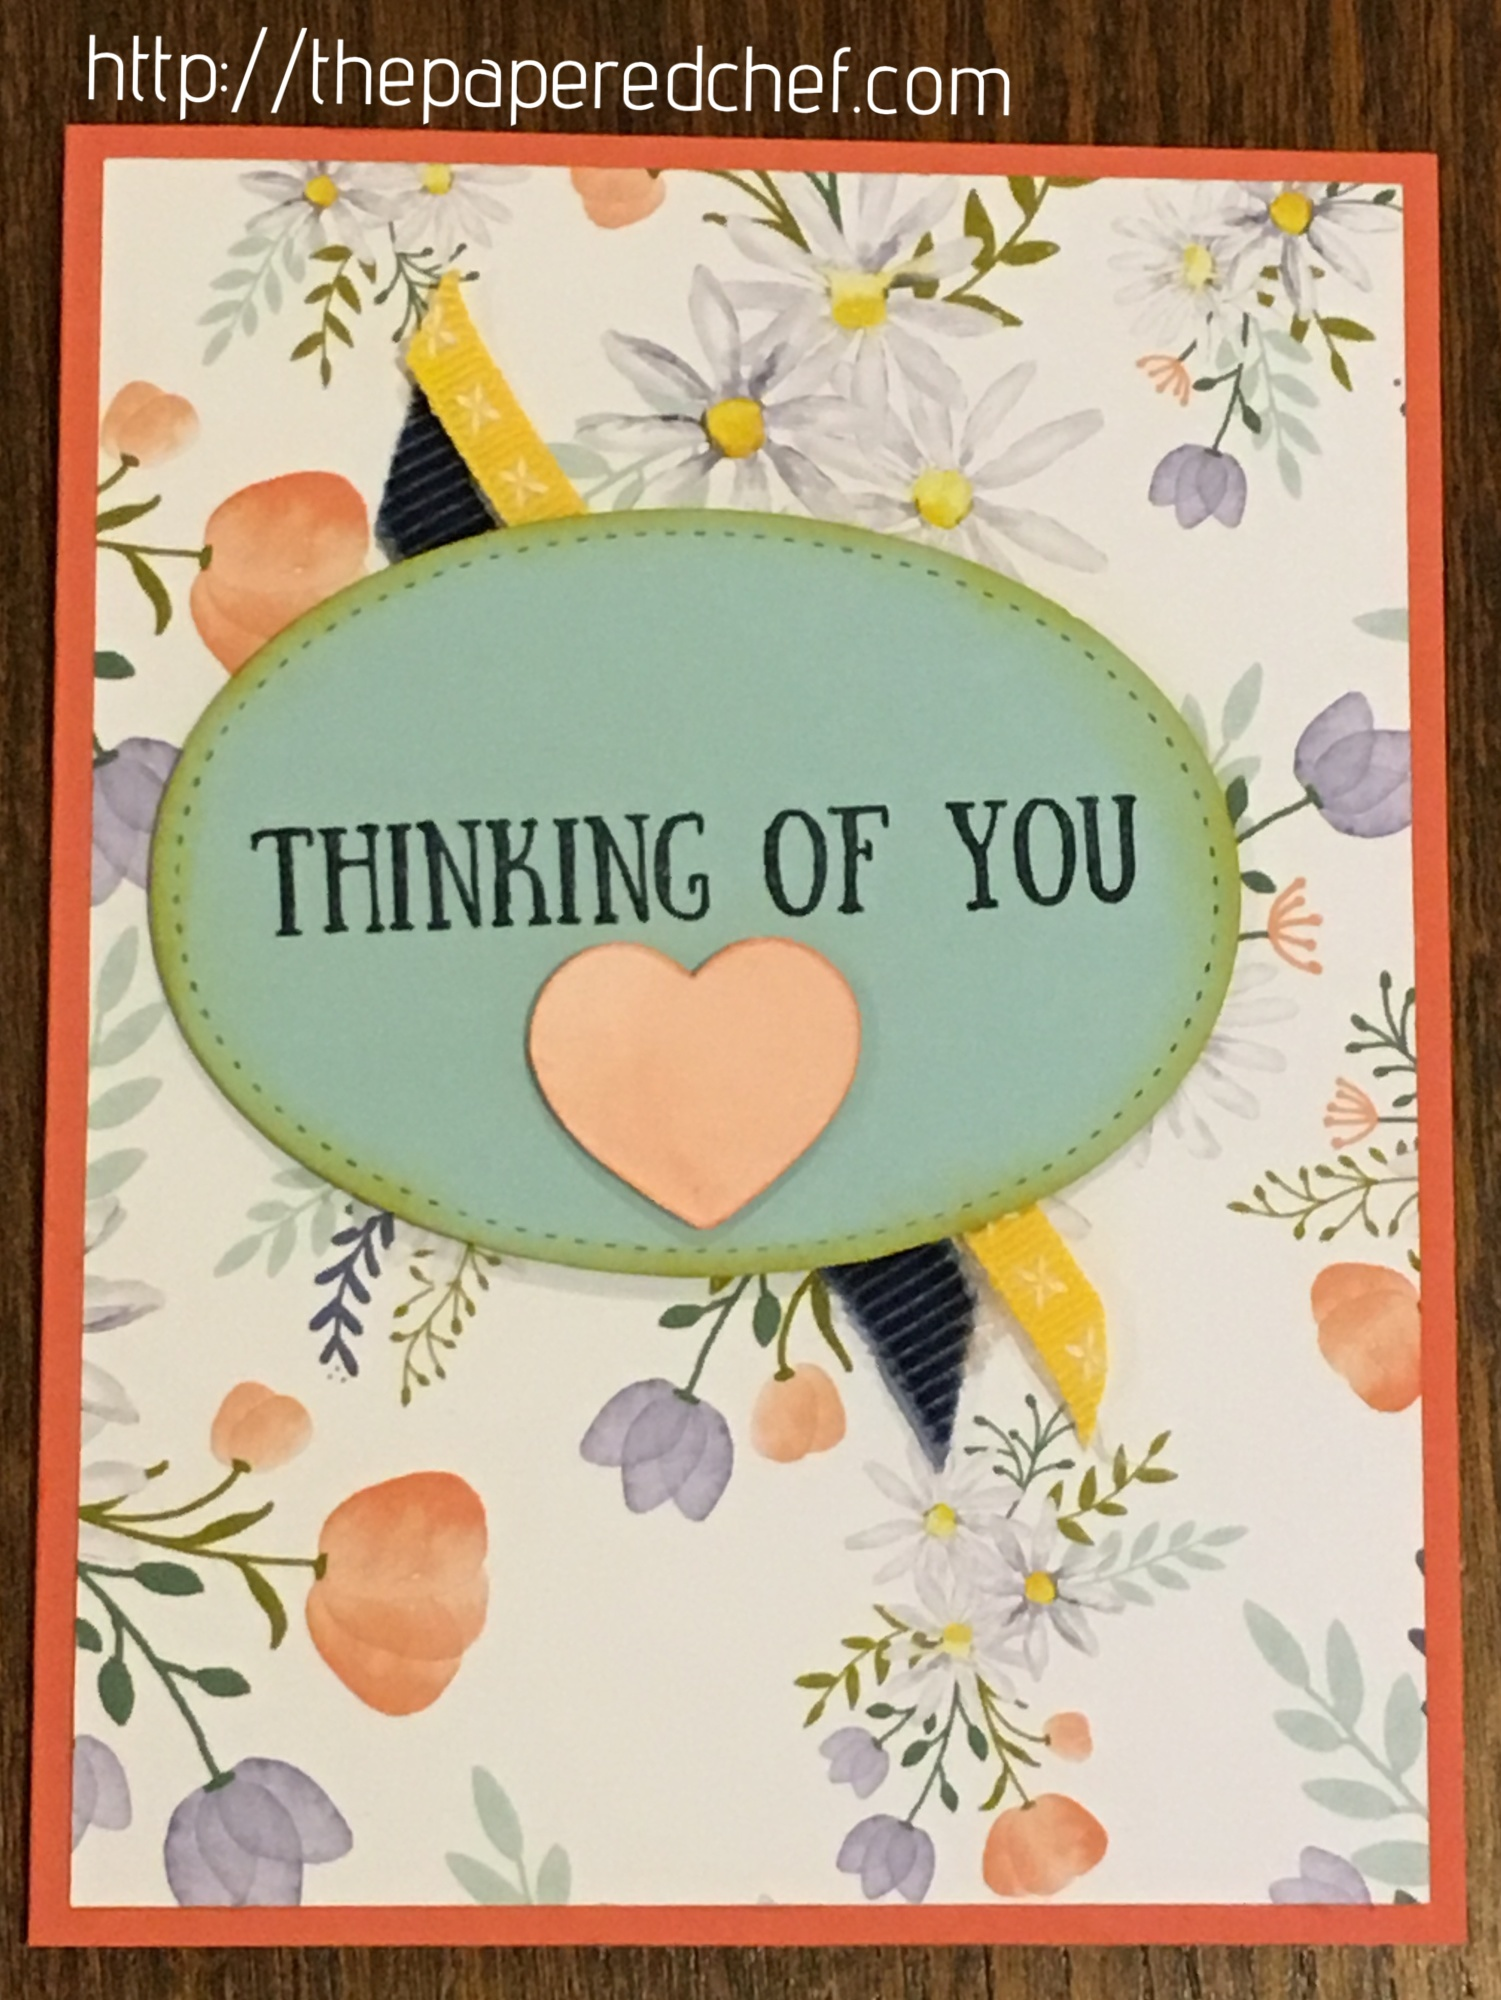 Delightful Daisy - Thinking of You Card